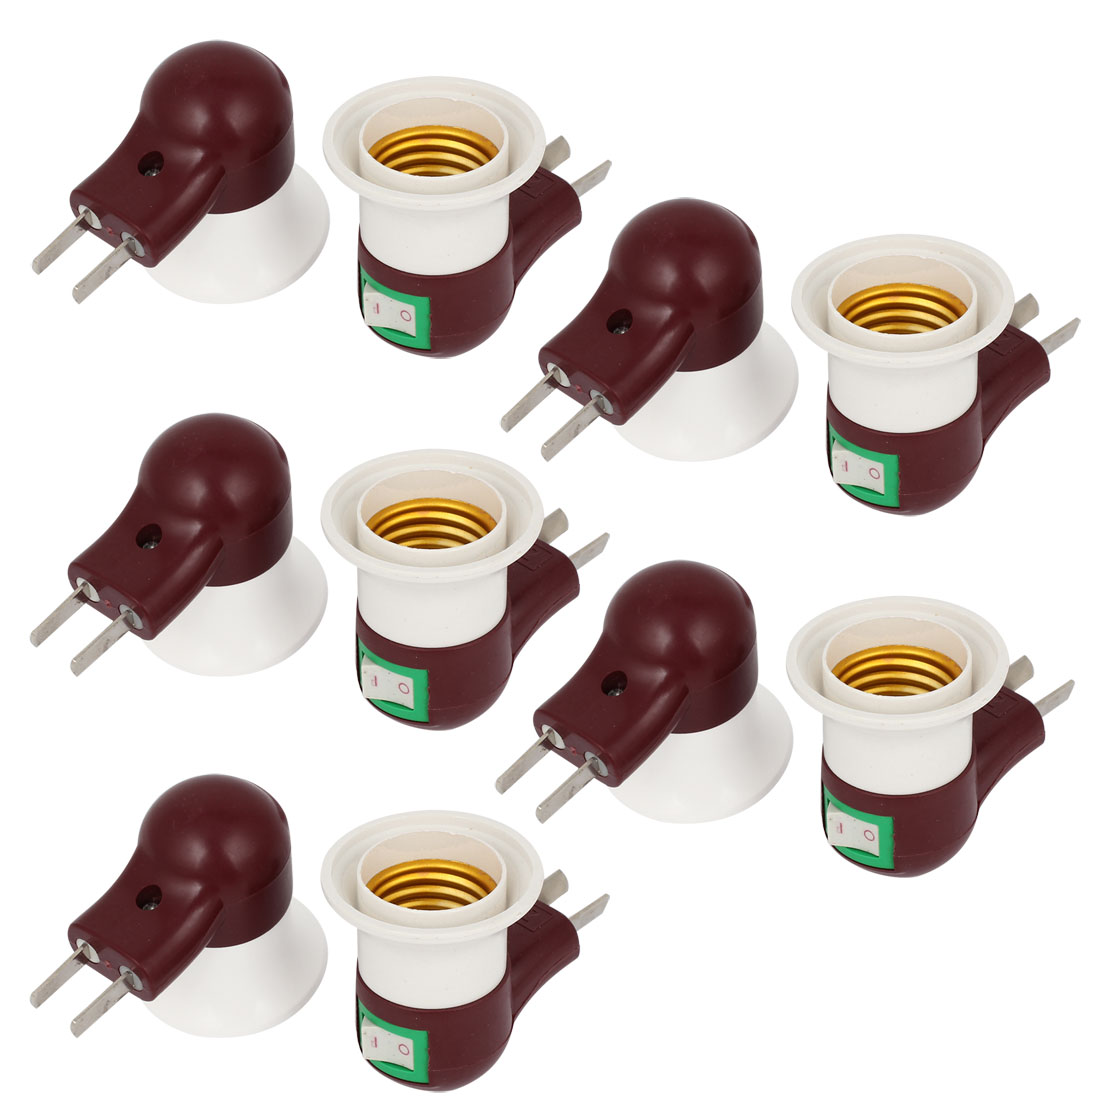 AC 250V AU US Plug E27 Socket Switch Control Bulb Holder Lamp Adapter 10pcs